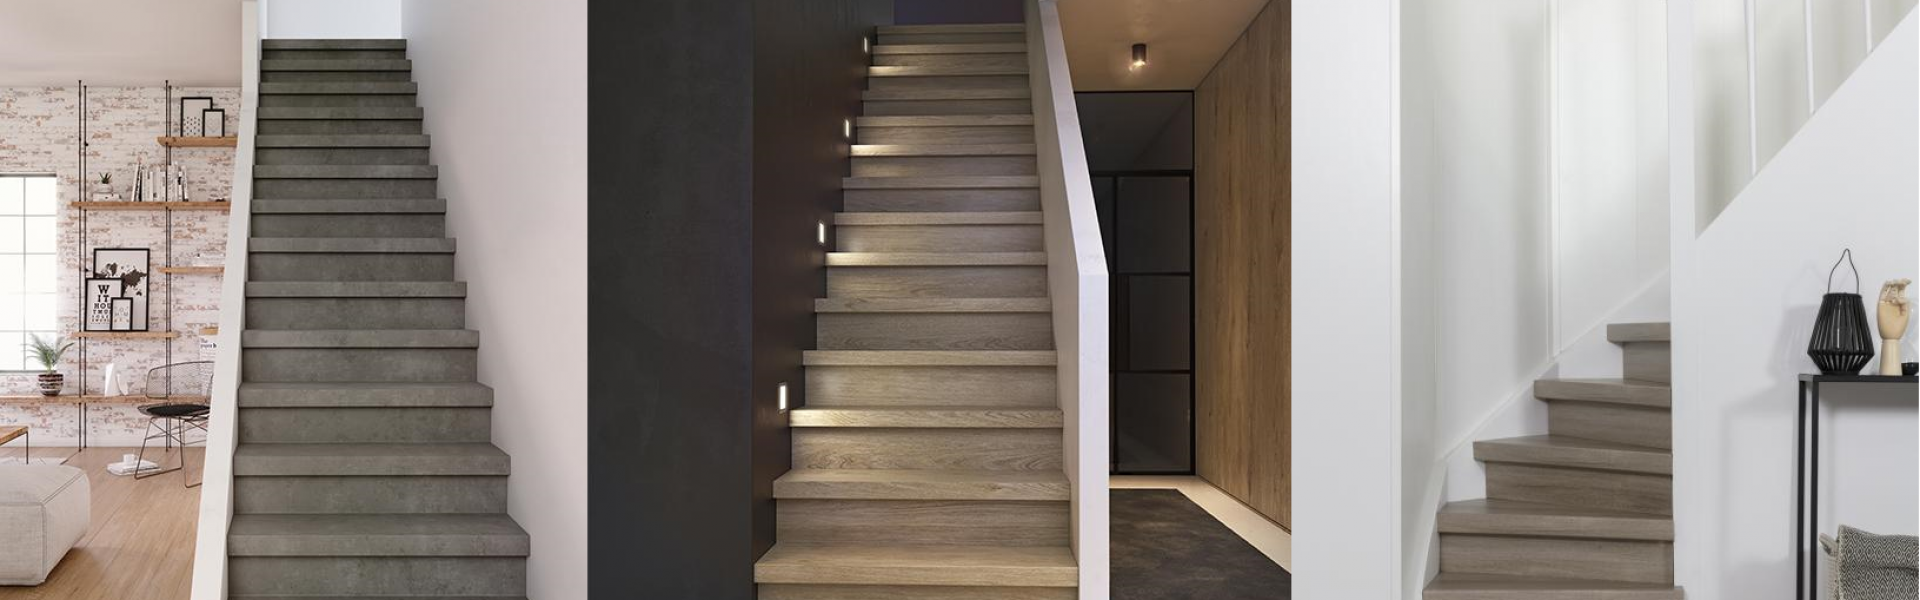 Laminate Stair Cladding